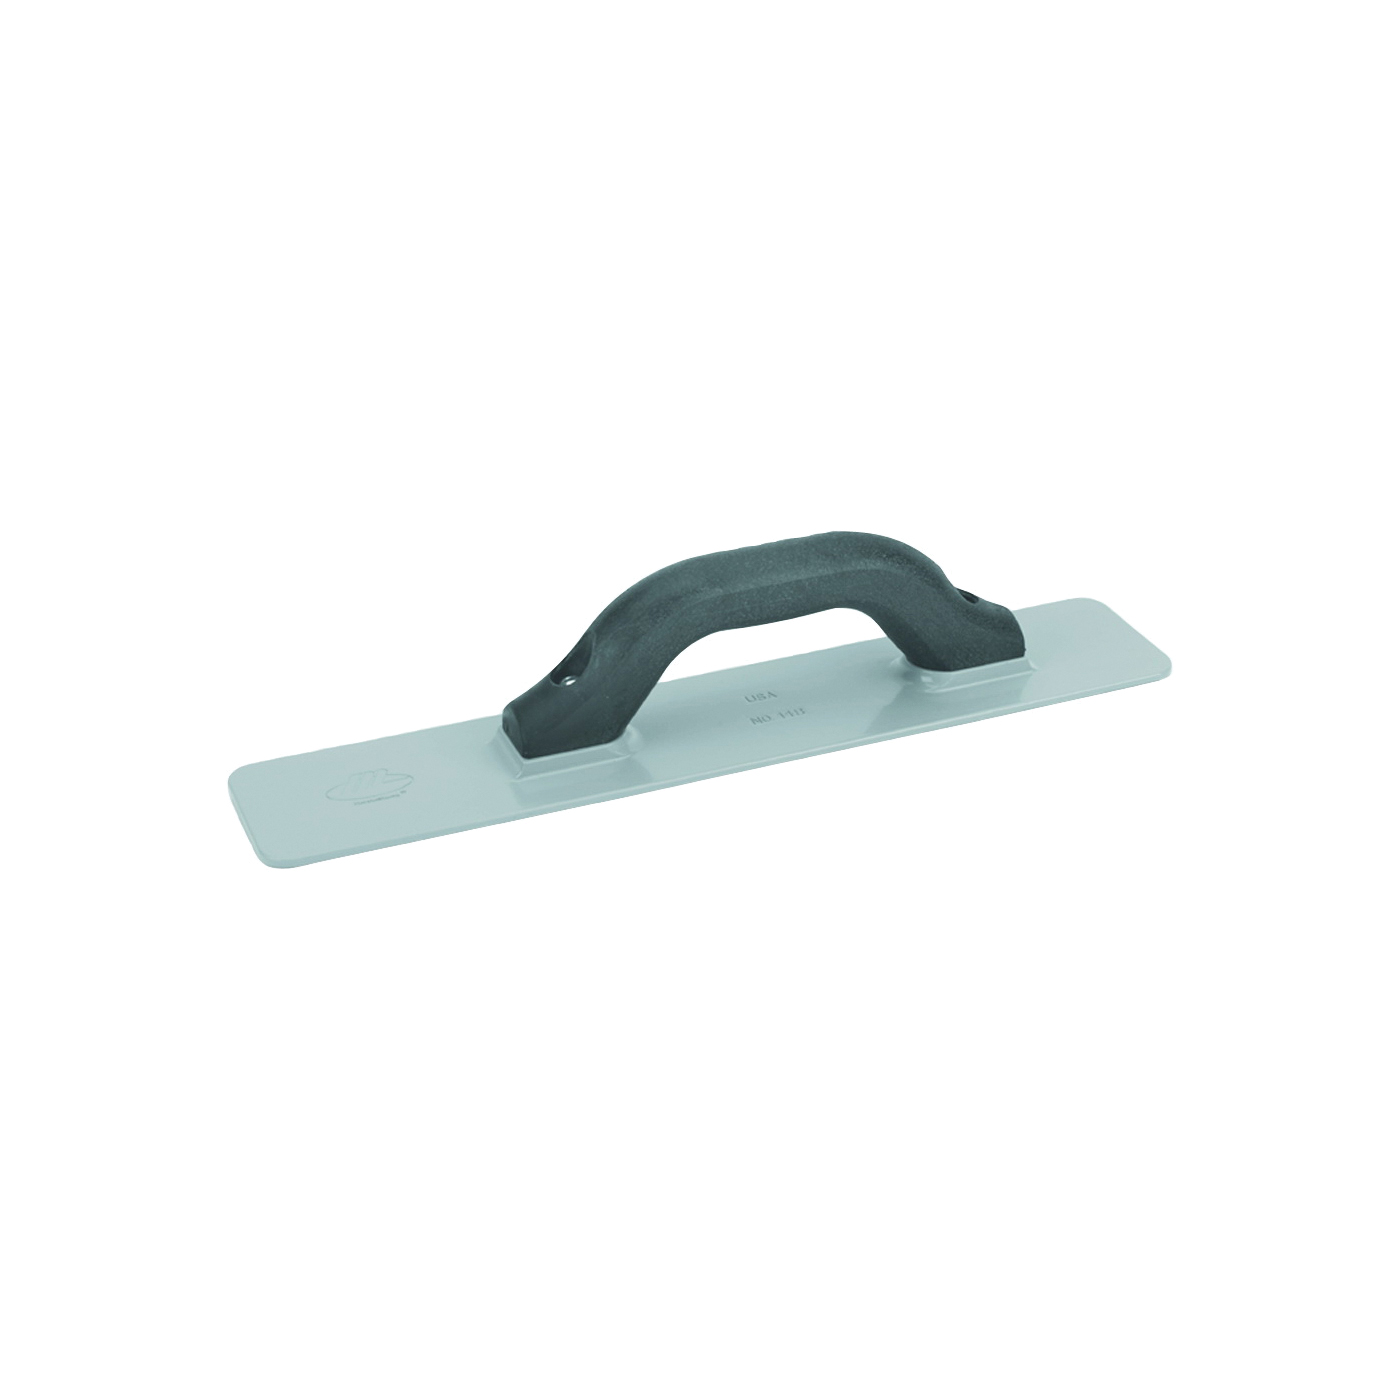 Picture of Marshalltown 148 Hand Float, 16 in L Blade, 3-1/8 in W Blade, Cast Magnesium Blade, Structural Foam Handle